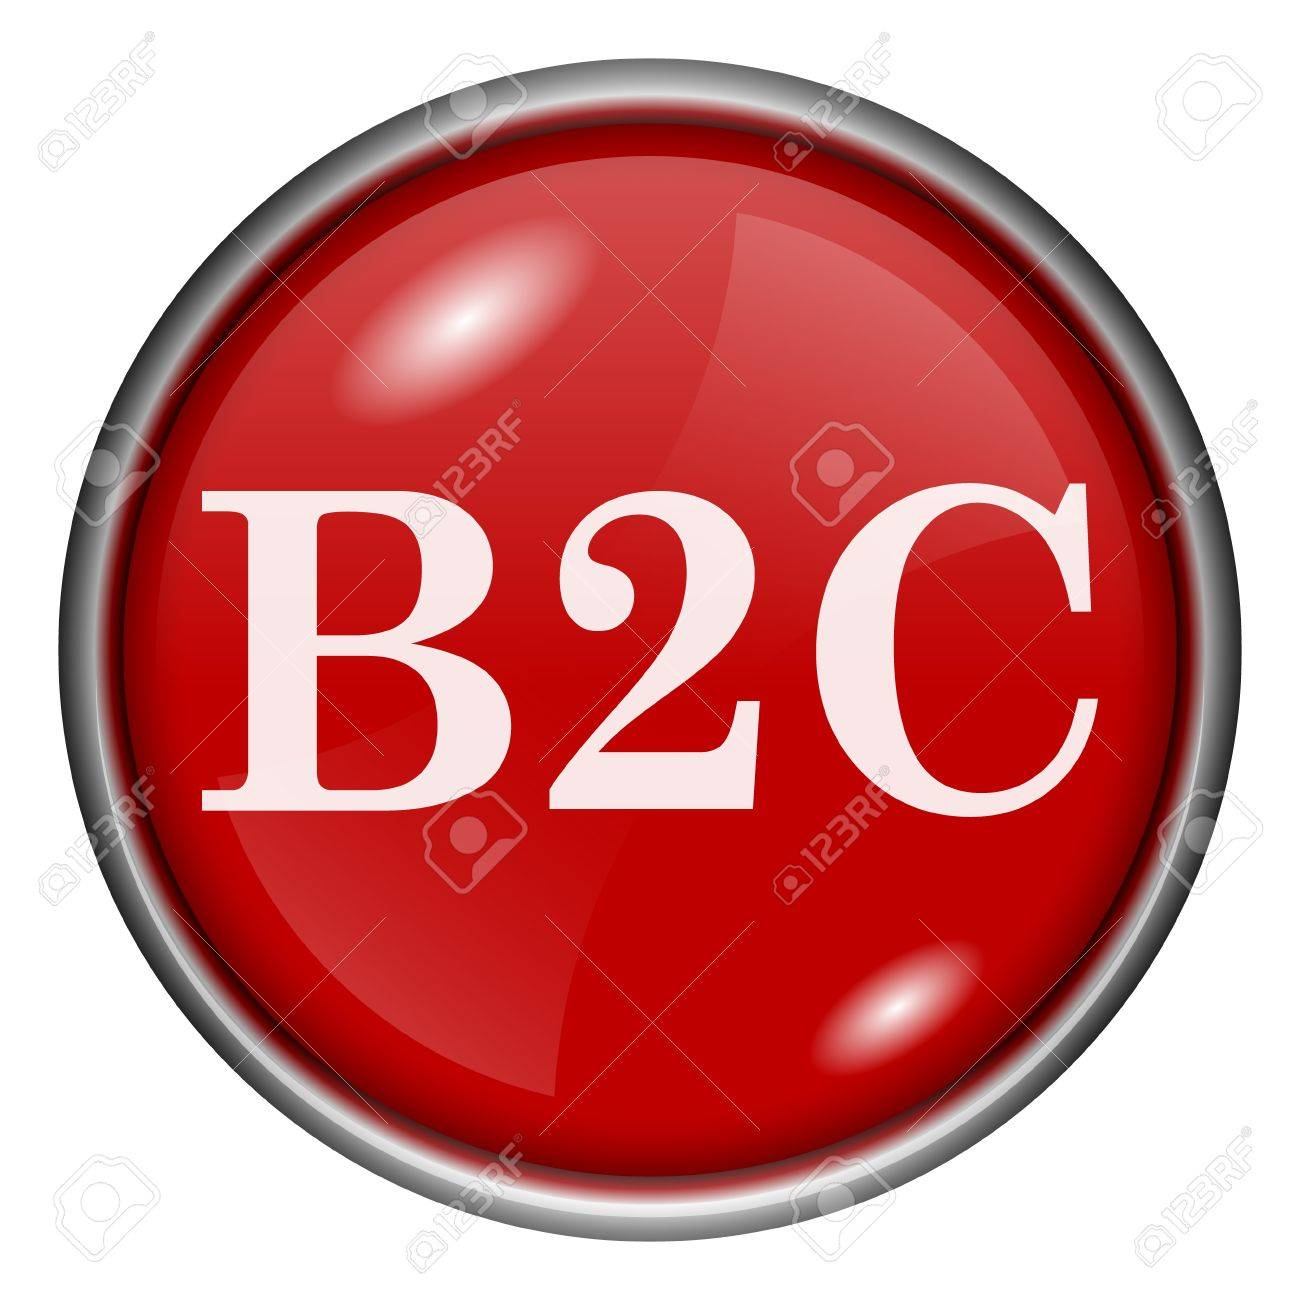 Red round glossy B2C icon with white design on red background Stock Photo - 20837452